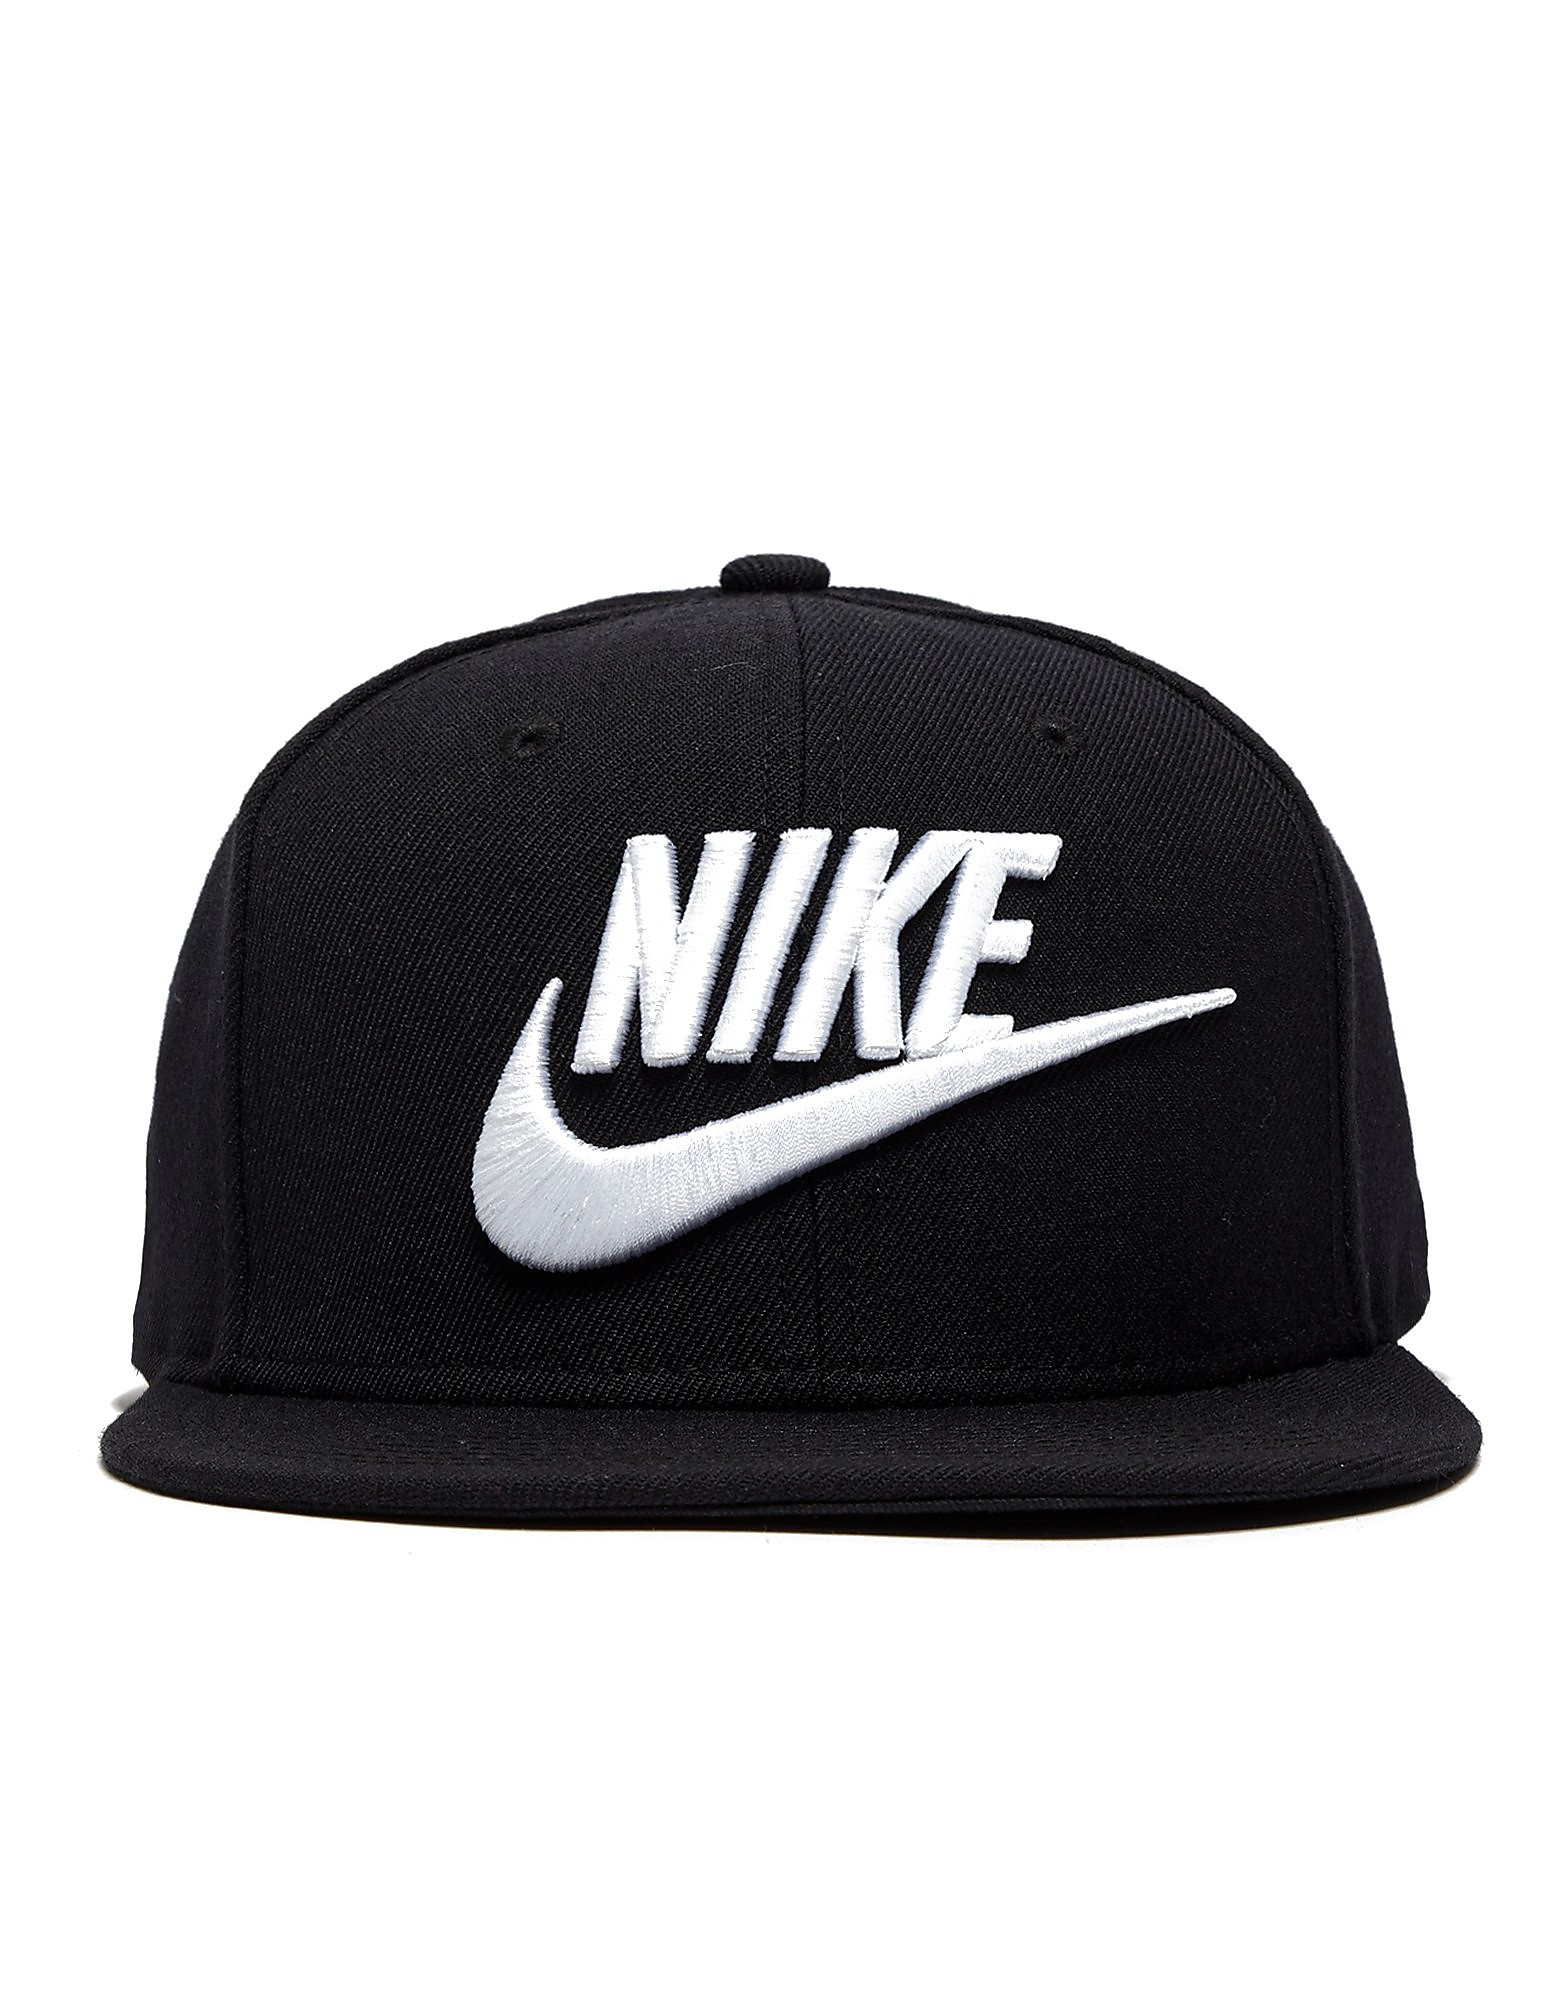 Nike Casquette ajustable Limitless True